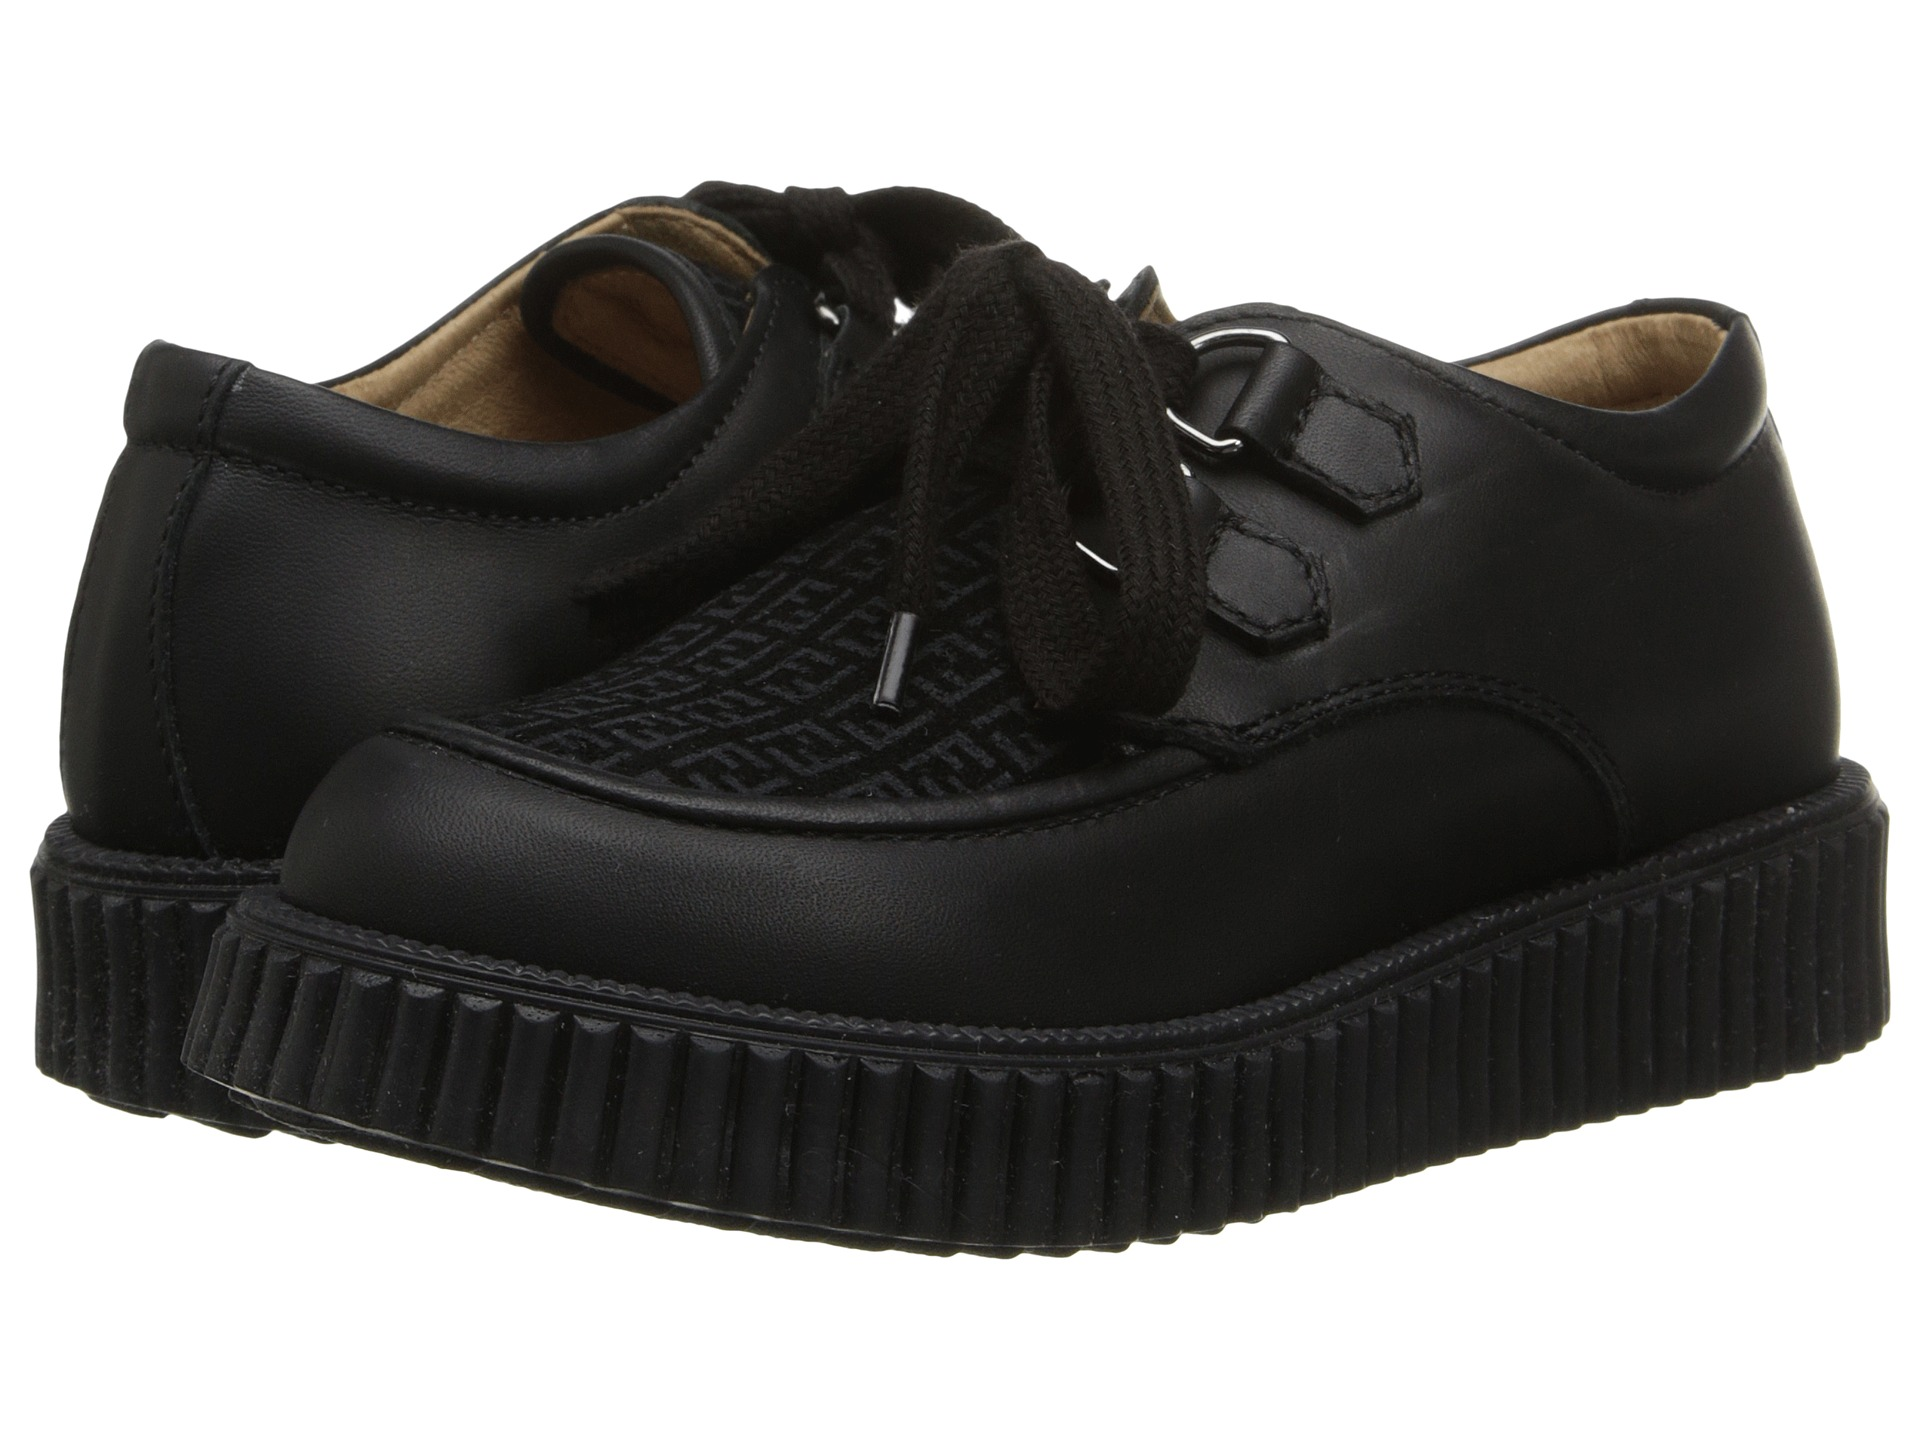 Kids Shoes With Thick Soles